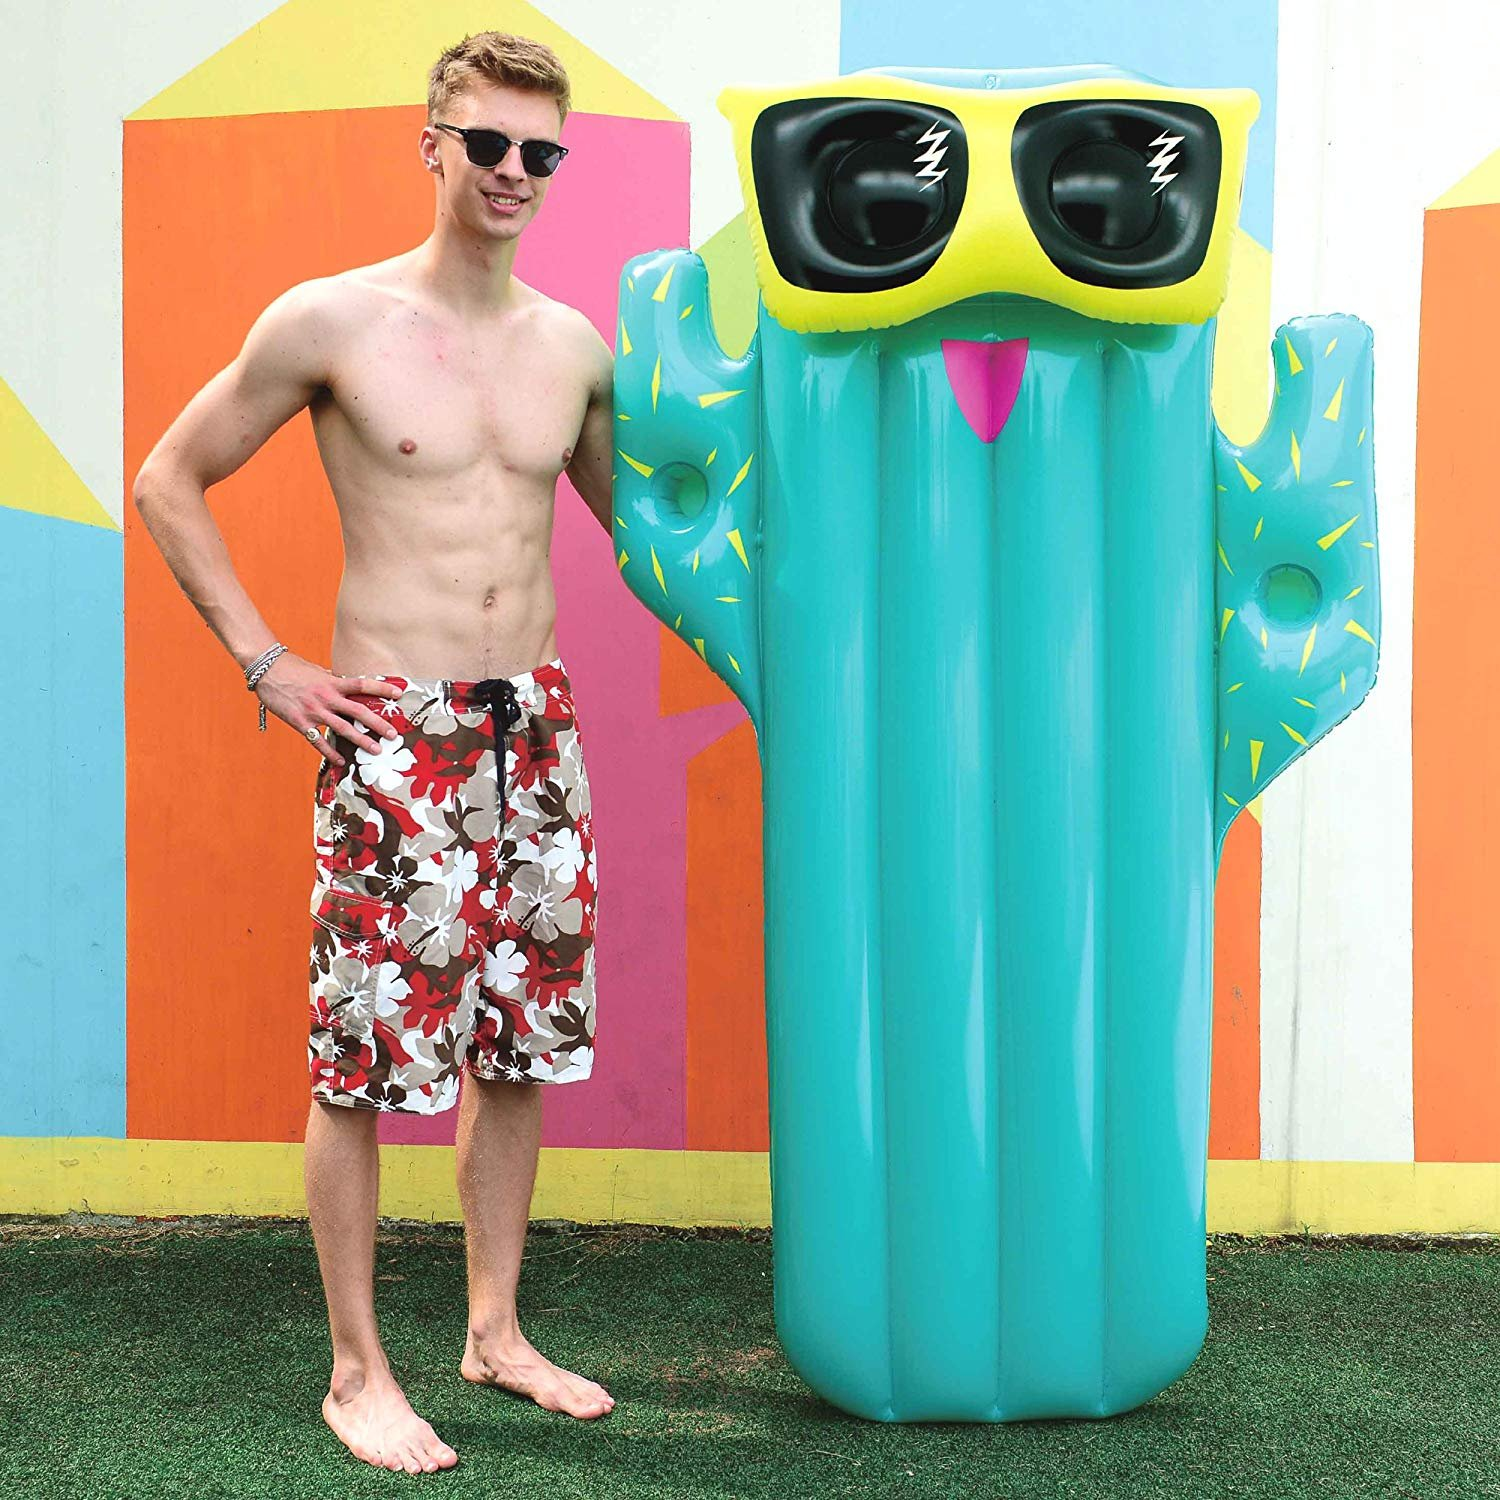 Cactus with Drinks holder - Inflatable Pool Toys Float Inflatable Floating Raft PVC Giant Popsicle Pool Lounger Air Mattress Blow Up Beach Toy for Kids Adults Summer Holiday - Made of Premium Strong PVC Material - By Guilty Gadgets